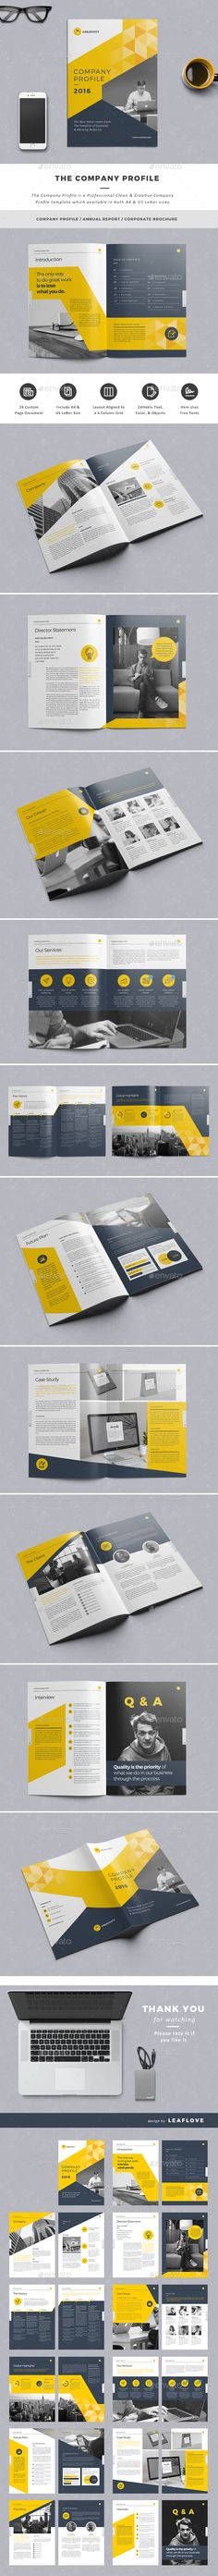 The Company Profile Brochure Template InDesign INDD #design Download: http://graphicriver.net/item/the-company-profile/14207058?ref=ksioks